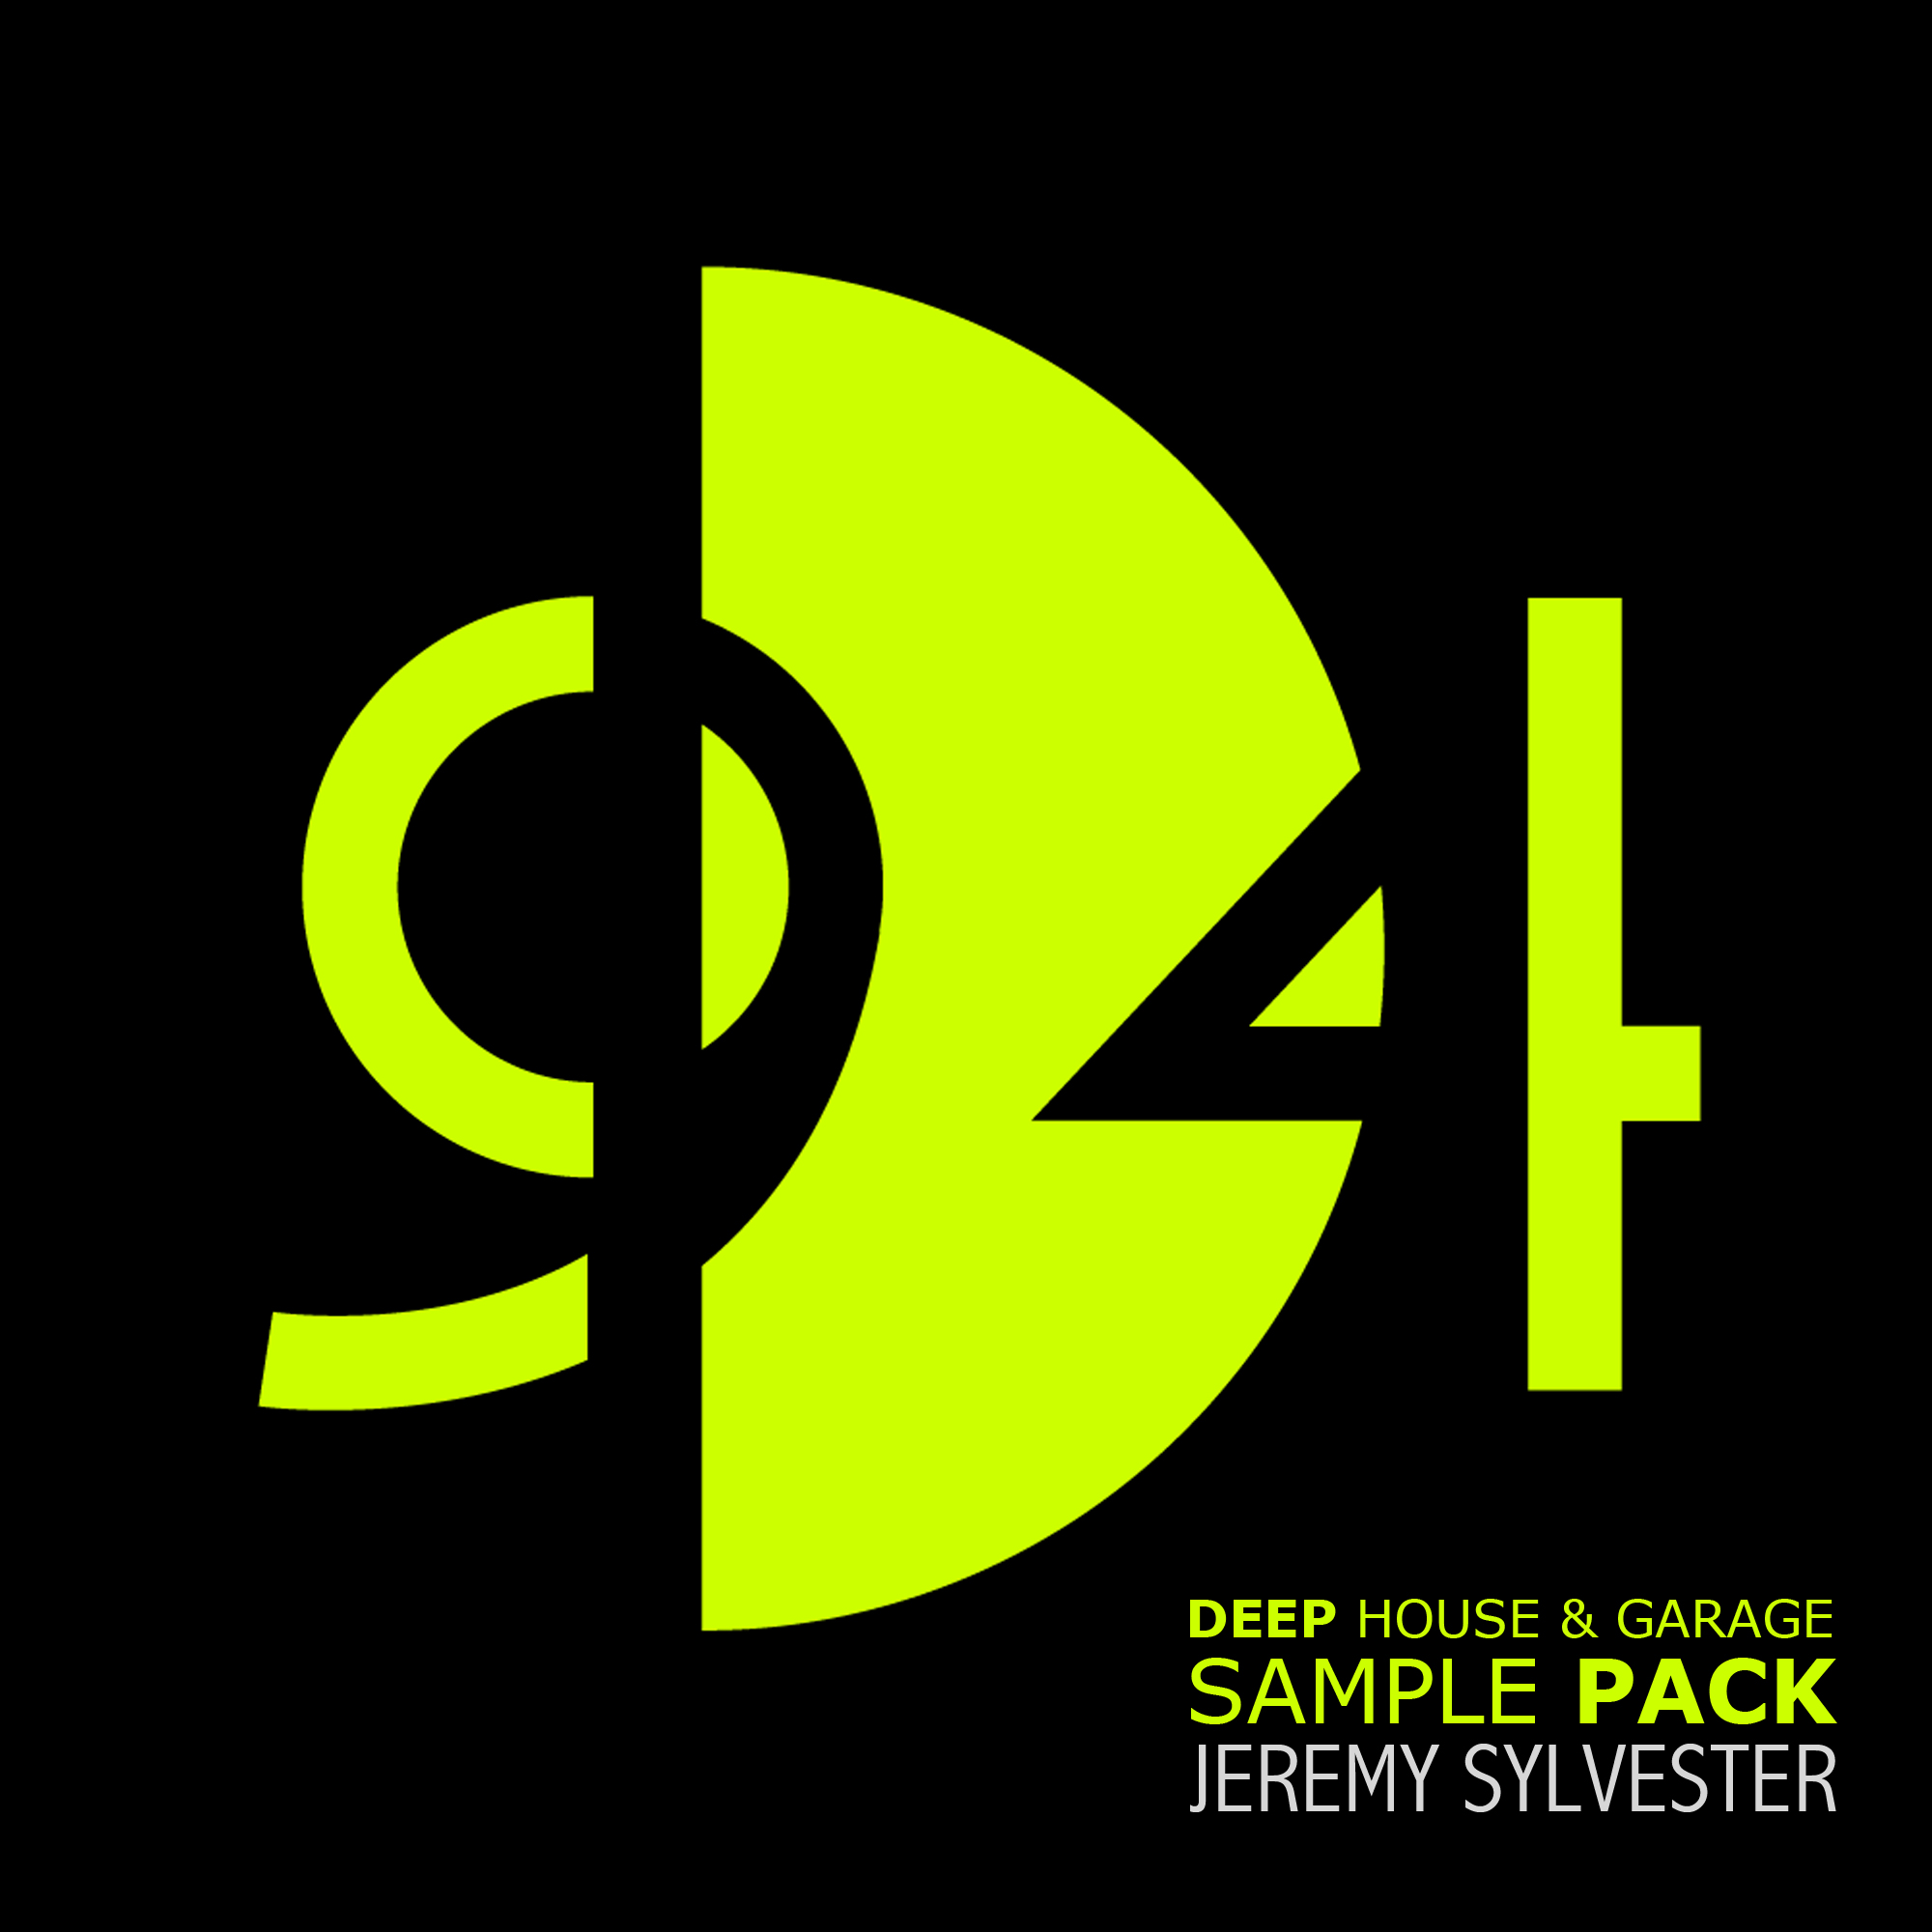 9D4_DEEP_HOUSE_GARAGE_PACK